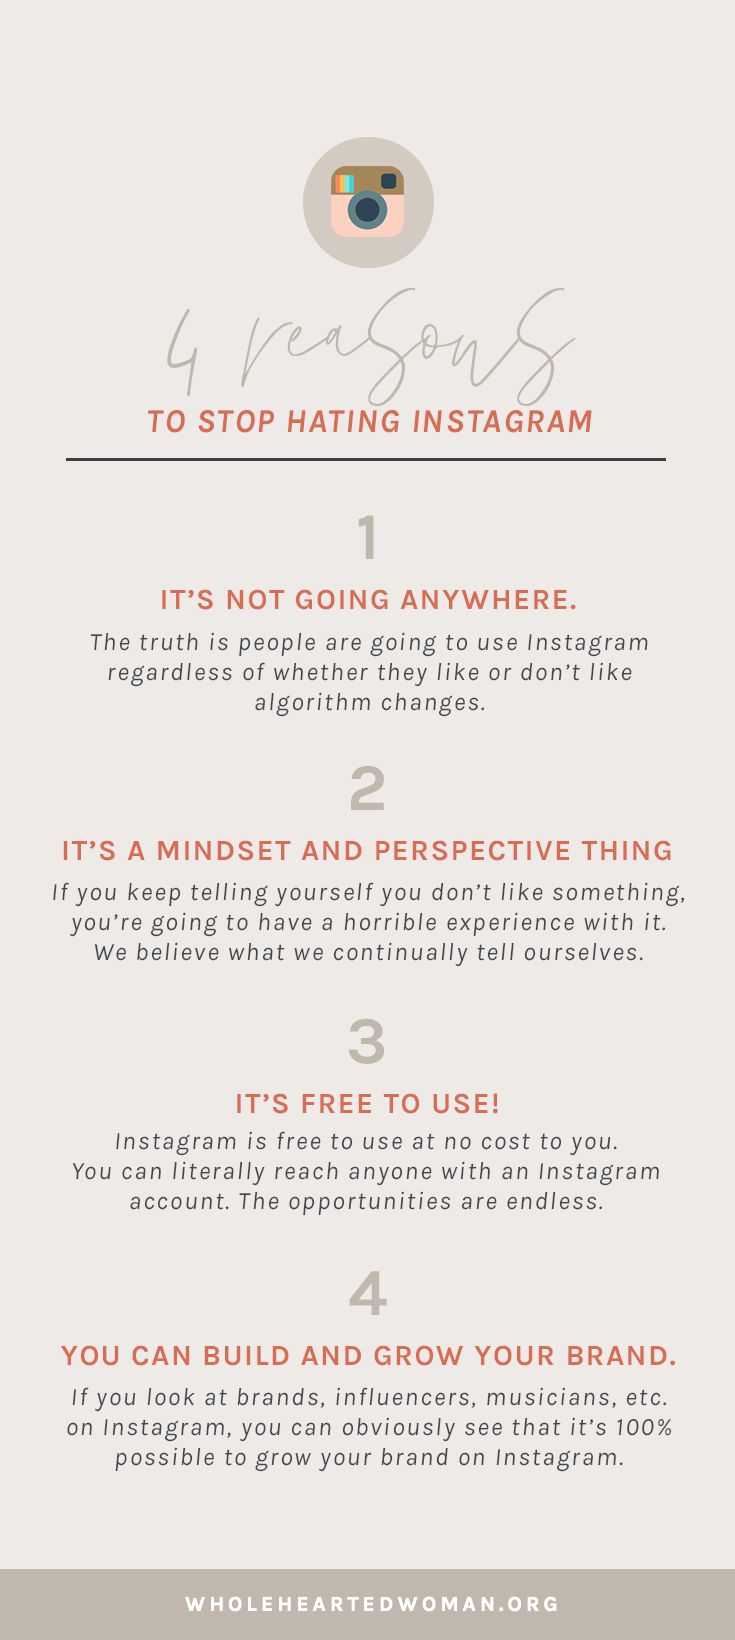 Why You Need To Stop Hating On Instagram (And How It's Hurting You) | How To Grow Your Business Using Instagram | Instagram Tips and Advice For Small Businesses and Creatives | Why Instagram Matters In 2018 | Social Media Growth in 2018 | Instagram Engagement | Wholehearted Woman | Self-Discovery | Personal Growth | Personal Branding | #personalbrand | #blog | #blogging | #blogger | #personalgrowth | #brandawareness | #instagram | #socialmedia